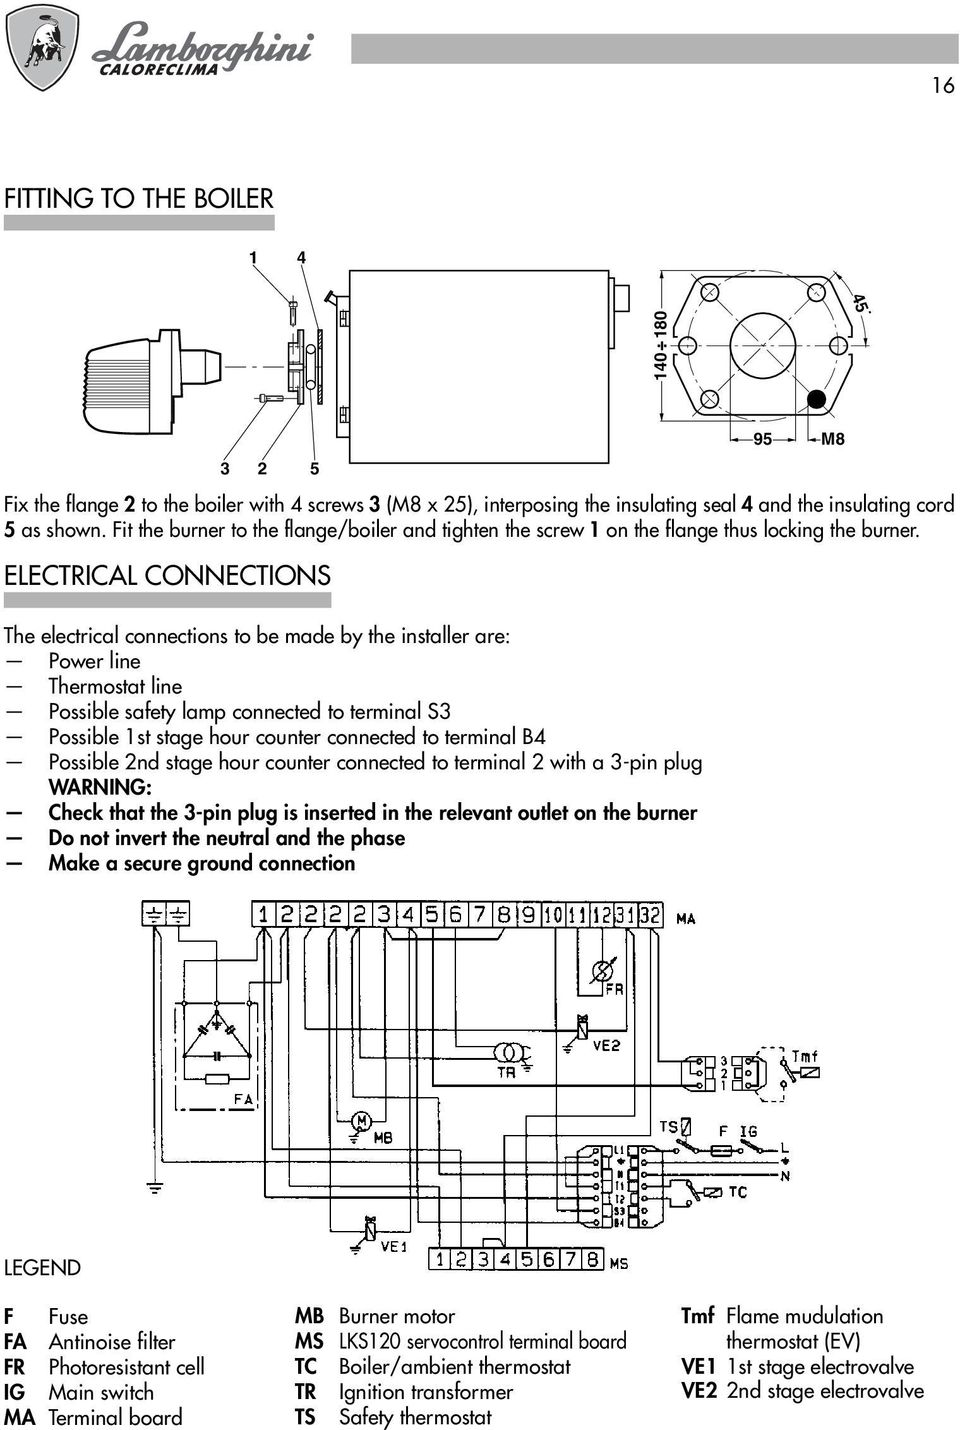 ELECTRICAL CONNECTIONS The electrical connections to be made by the installer are: Power line Thermostat line Possible safety lamp connected to terminal S3 Possible 1st stage hour counter connected